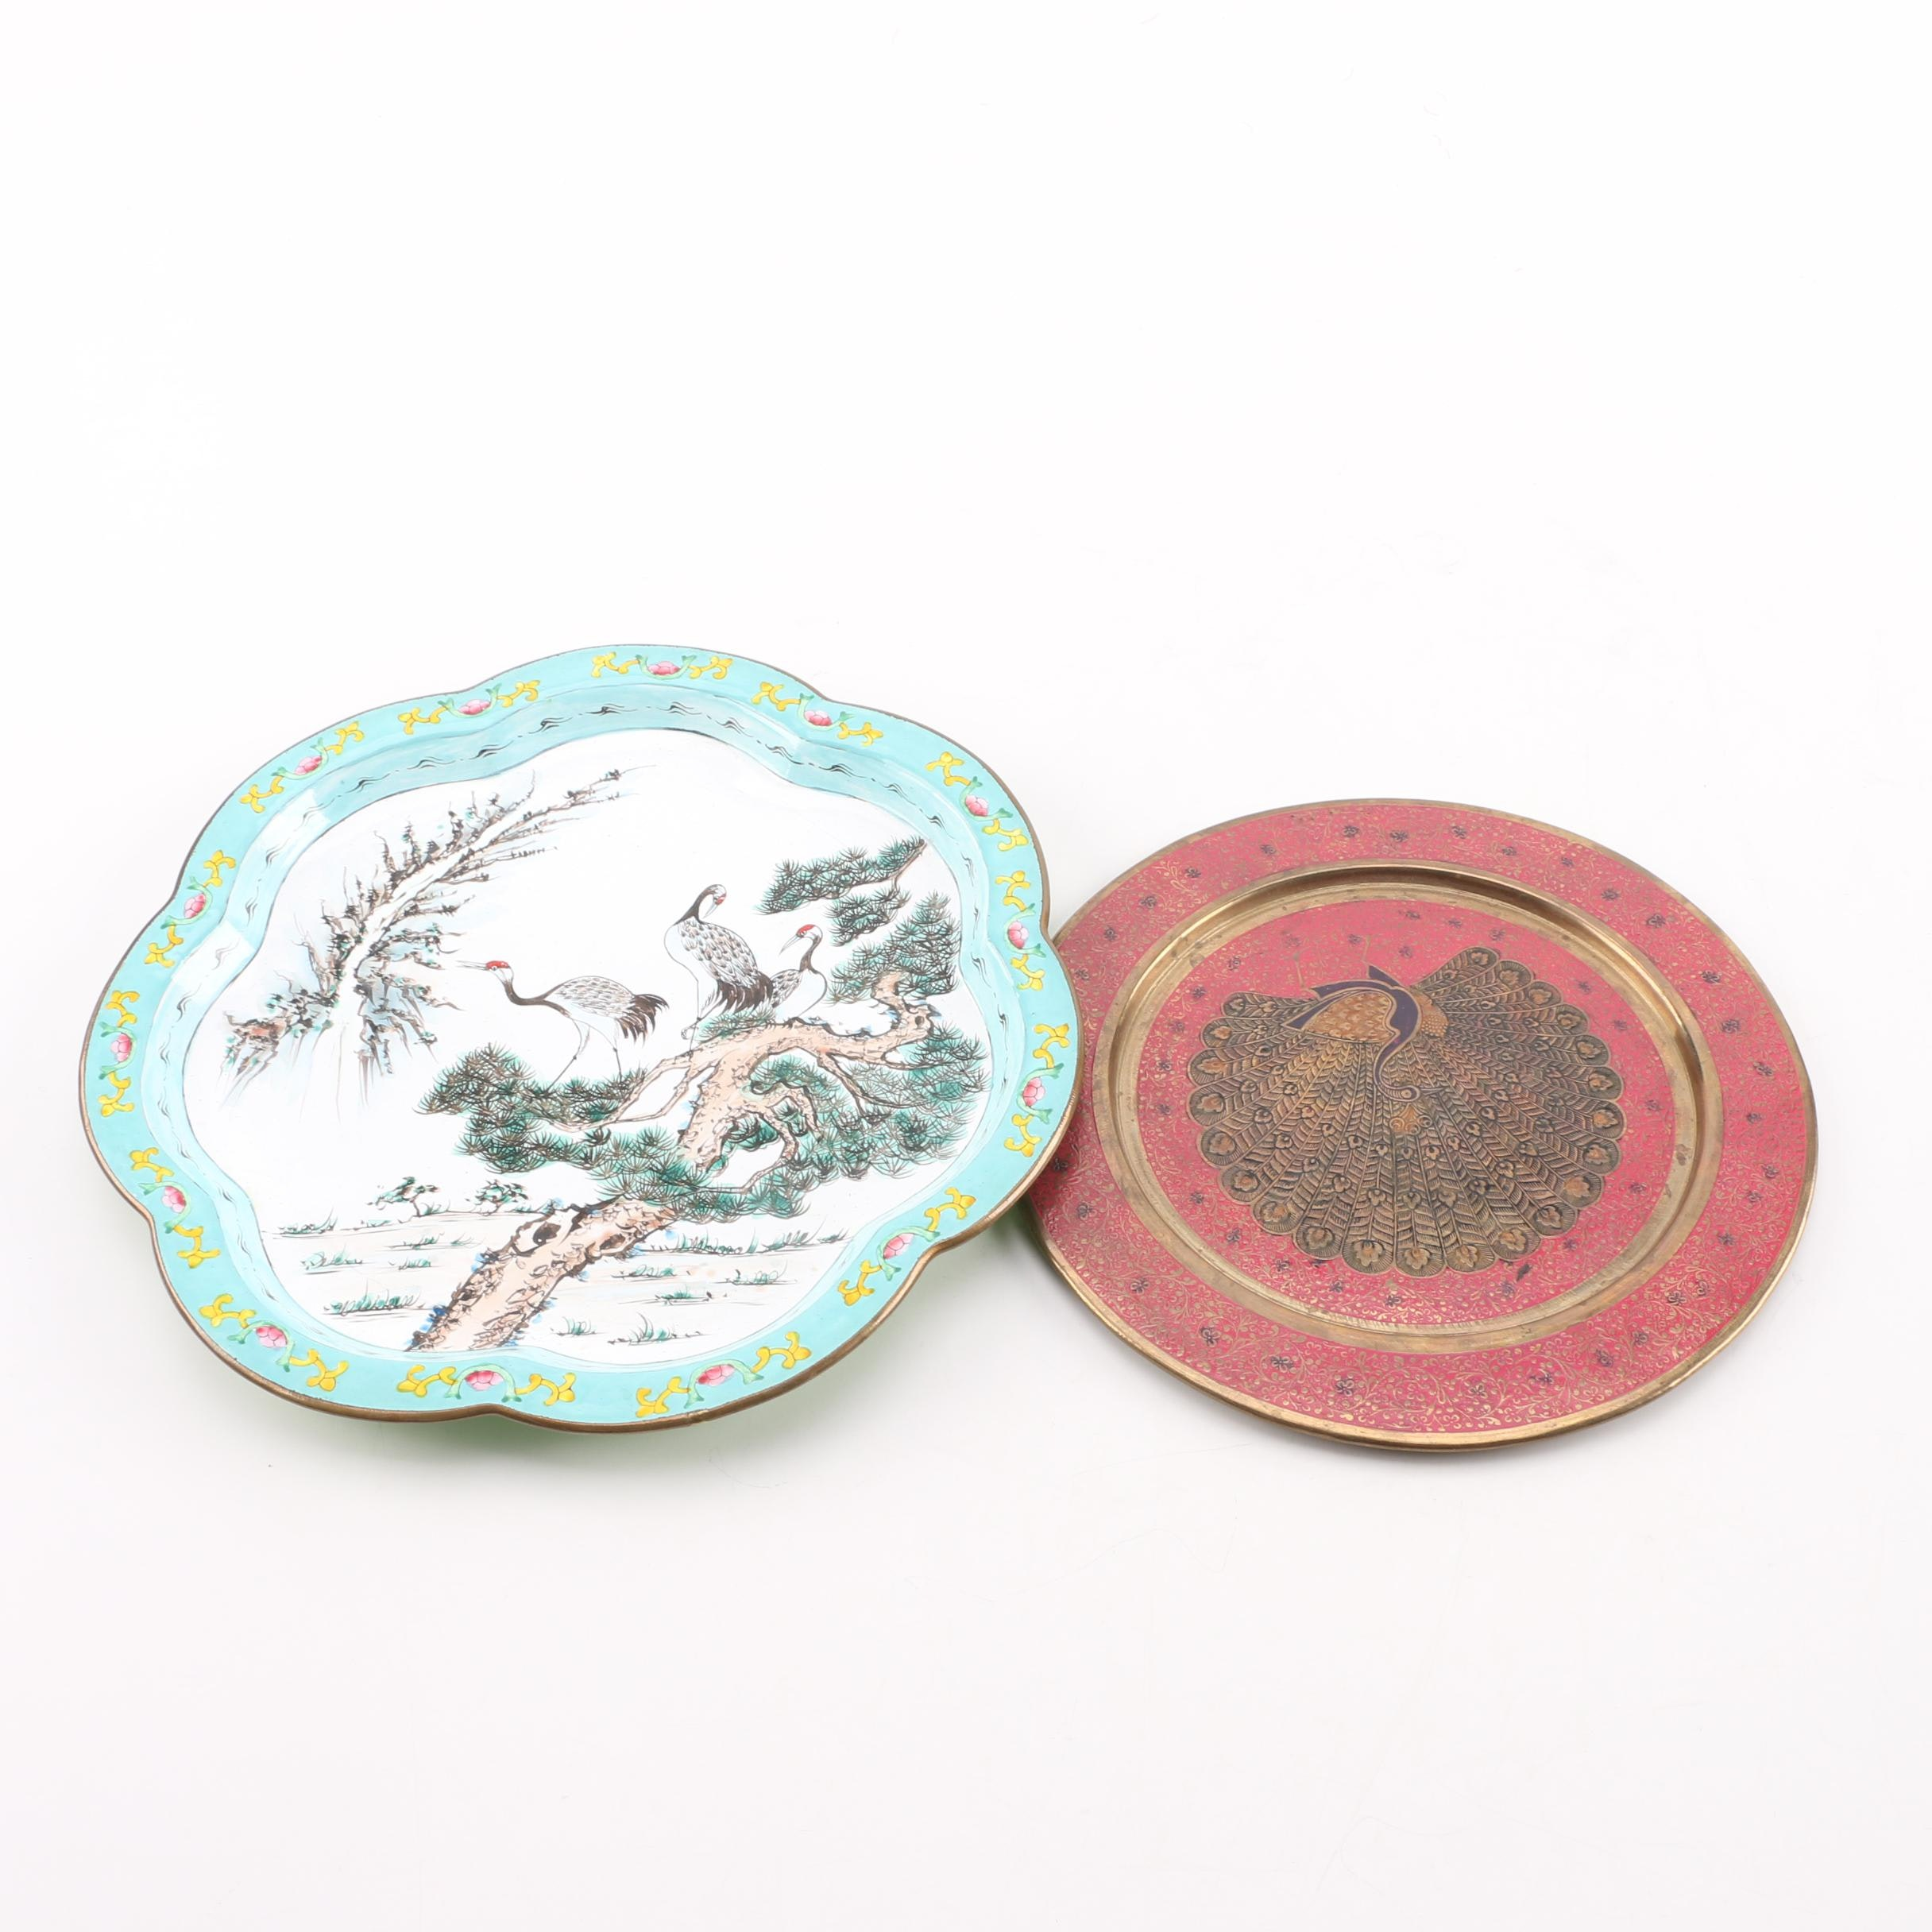 Chinese Porcelain Decorative Plate and Decorative Metal Plate ...  sc 1 st  EBTH.com & Chinese Porcelain Decorative Plate and Decorative Metal Plate : EBTH